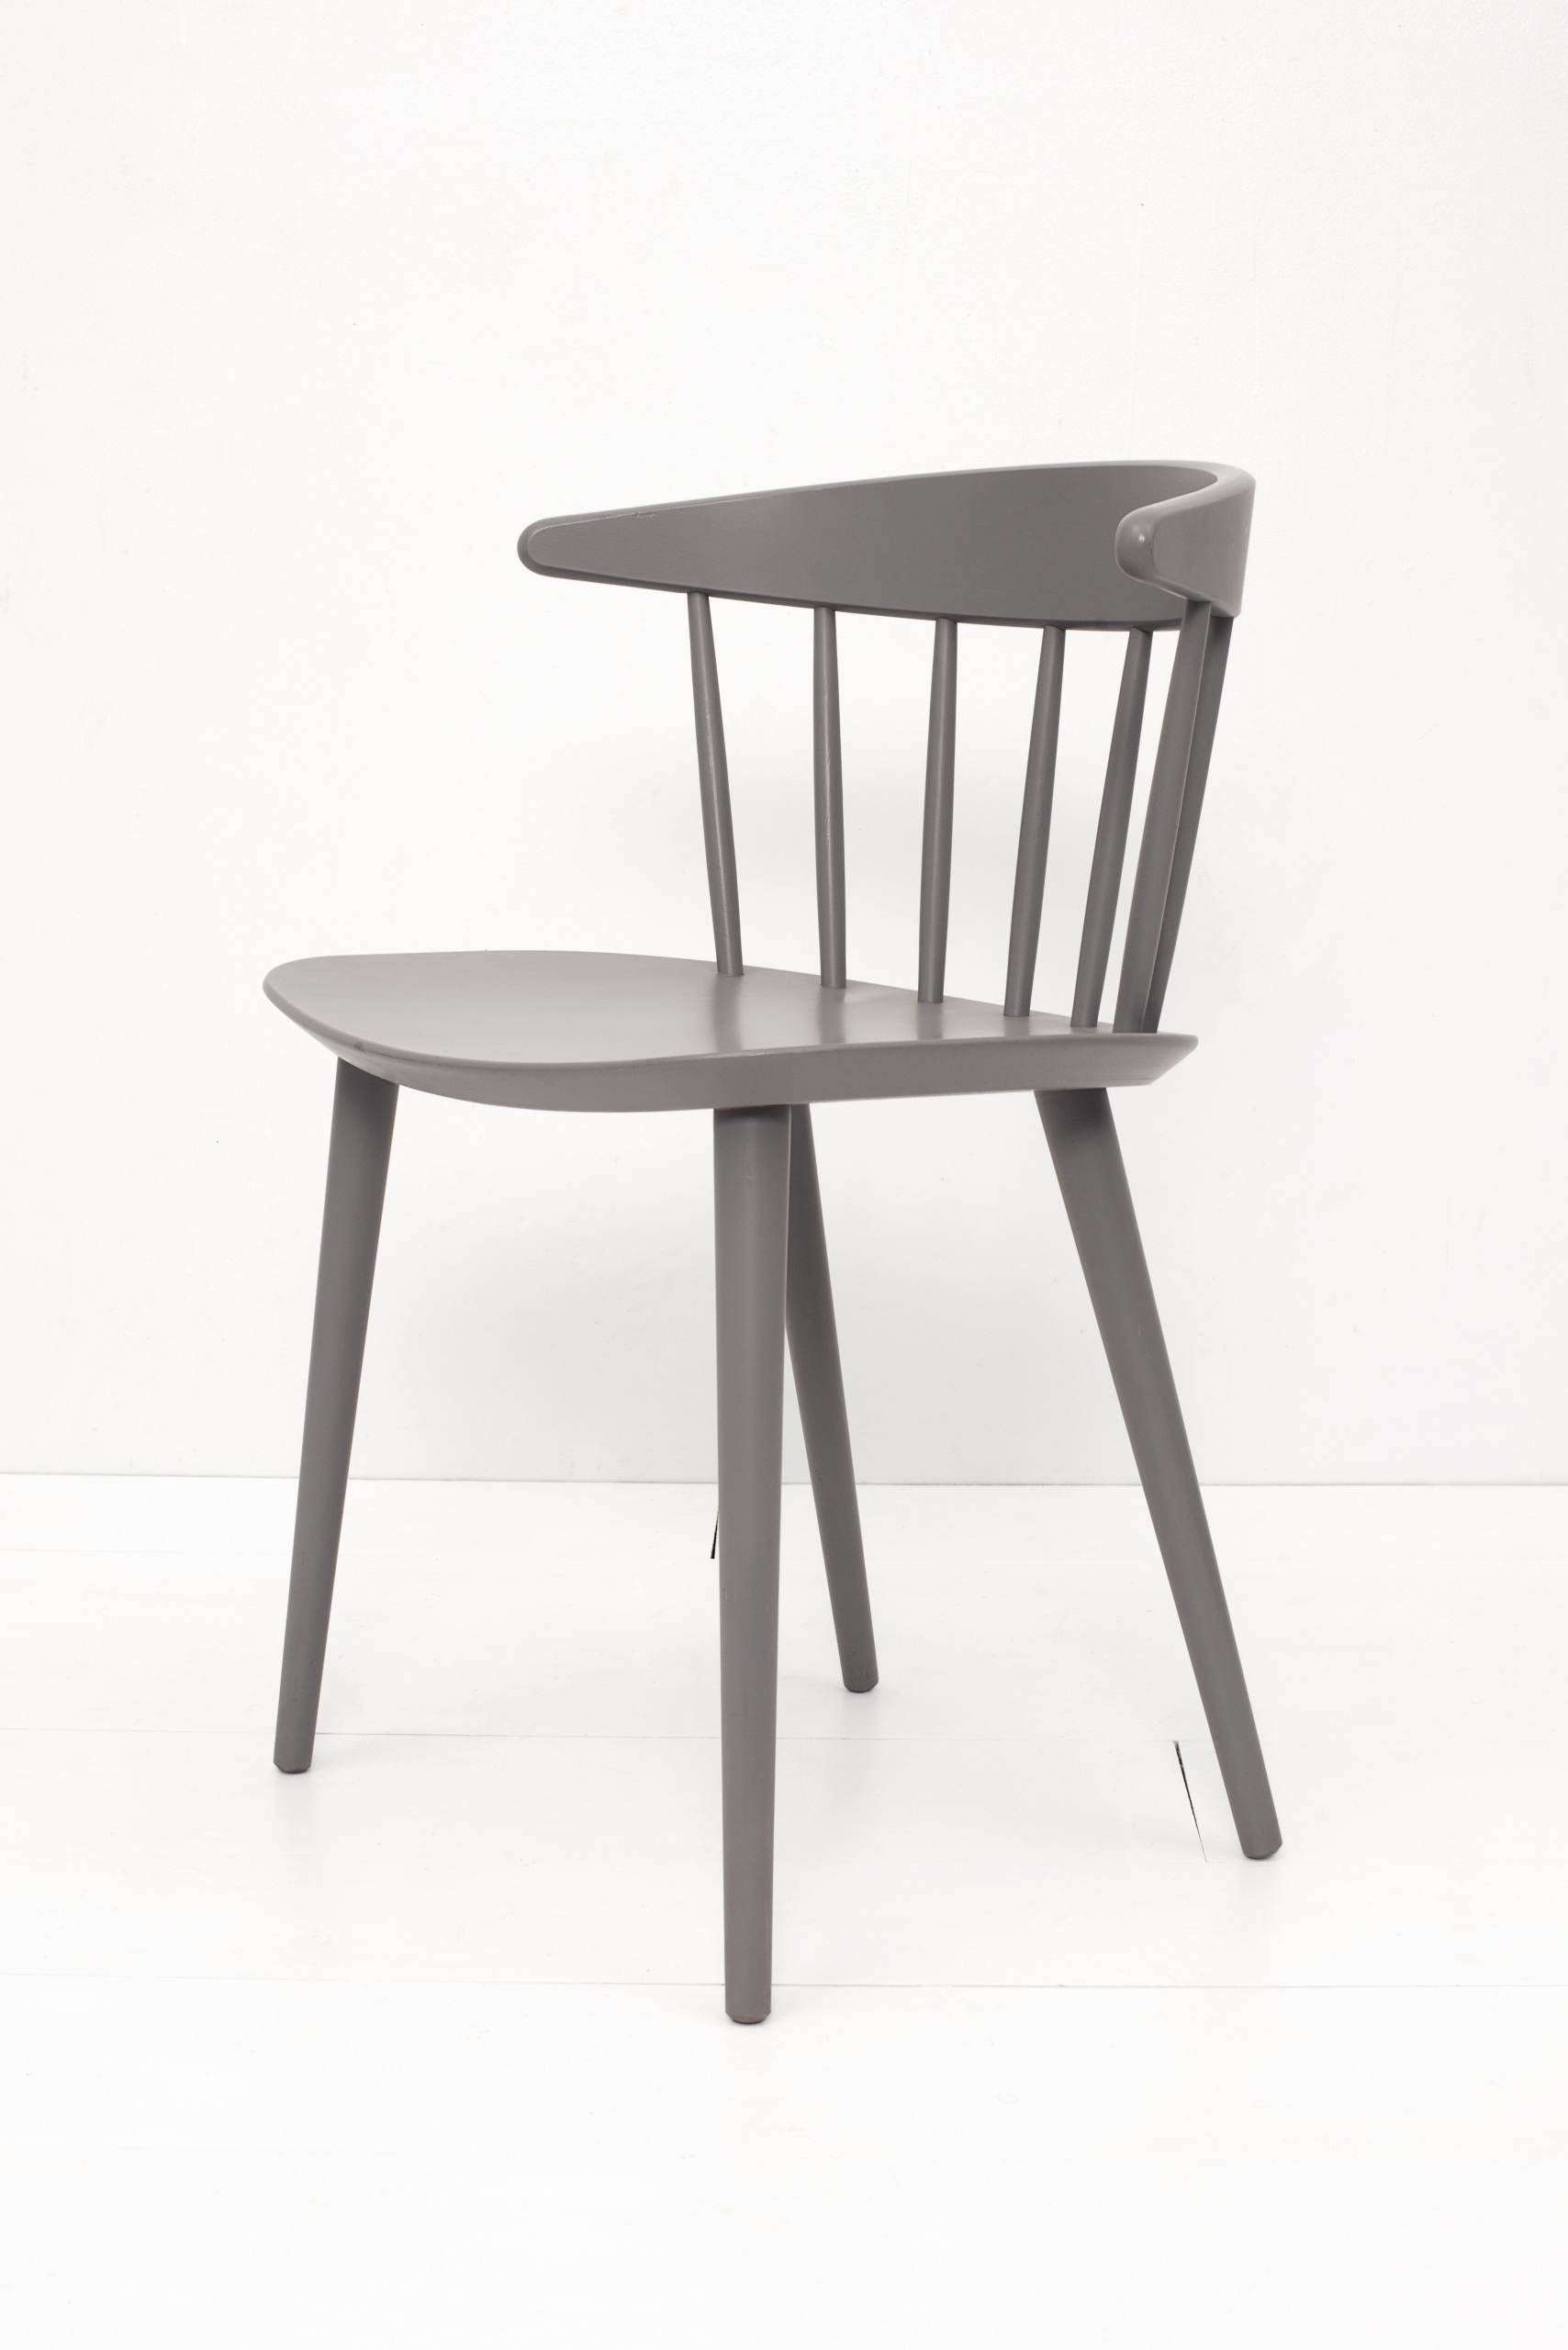 Hay design danish gray chair c089 for Hay design